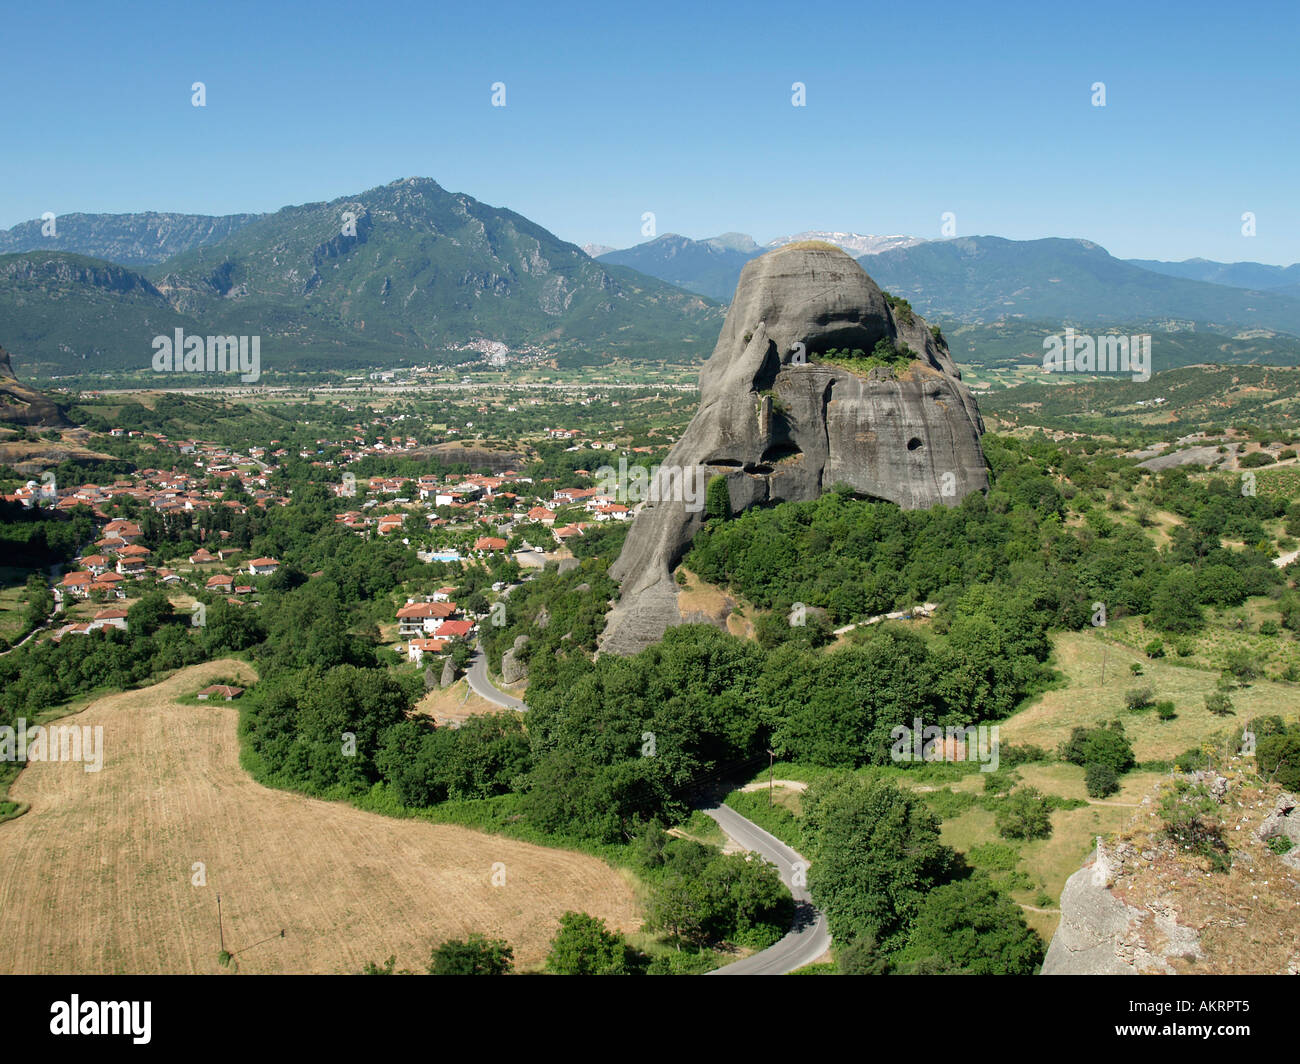 landscape with giant steep rocks in the area of Meteora on the plain of Thessaly near by Kastraki on the edge of the Pindus - Stock Image